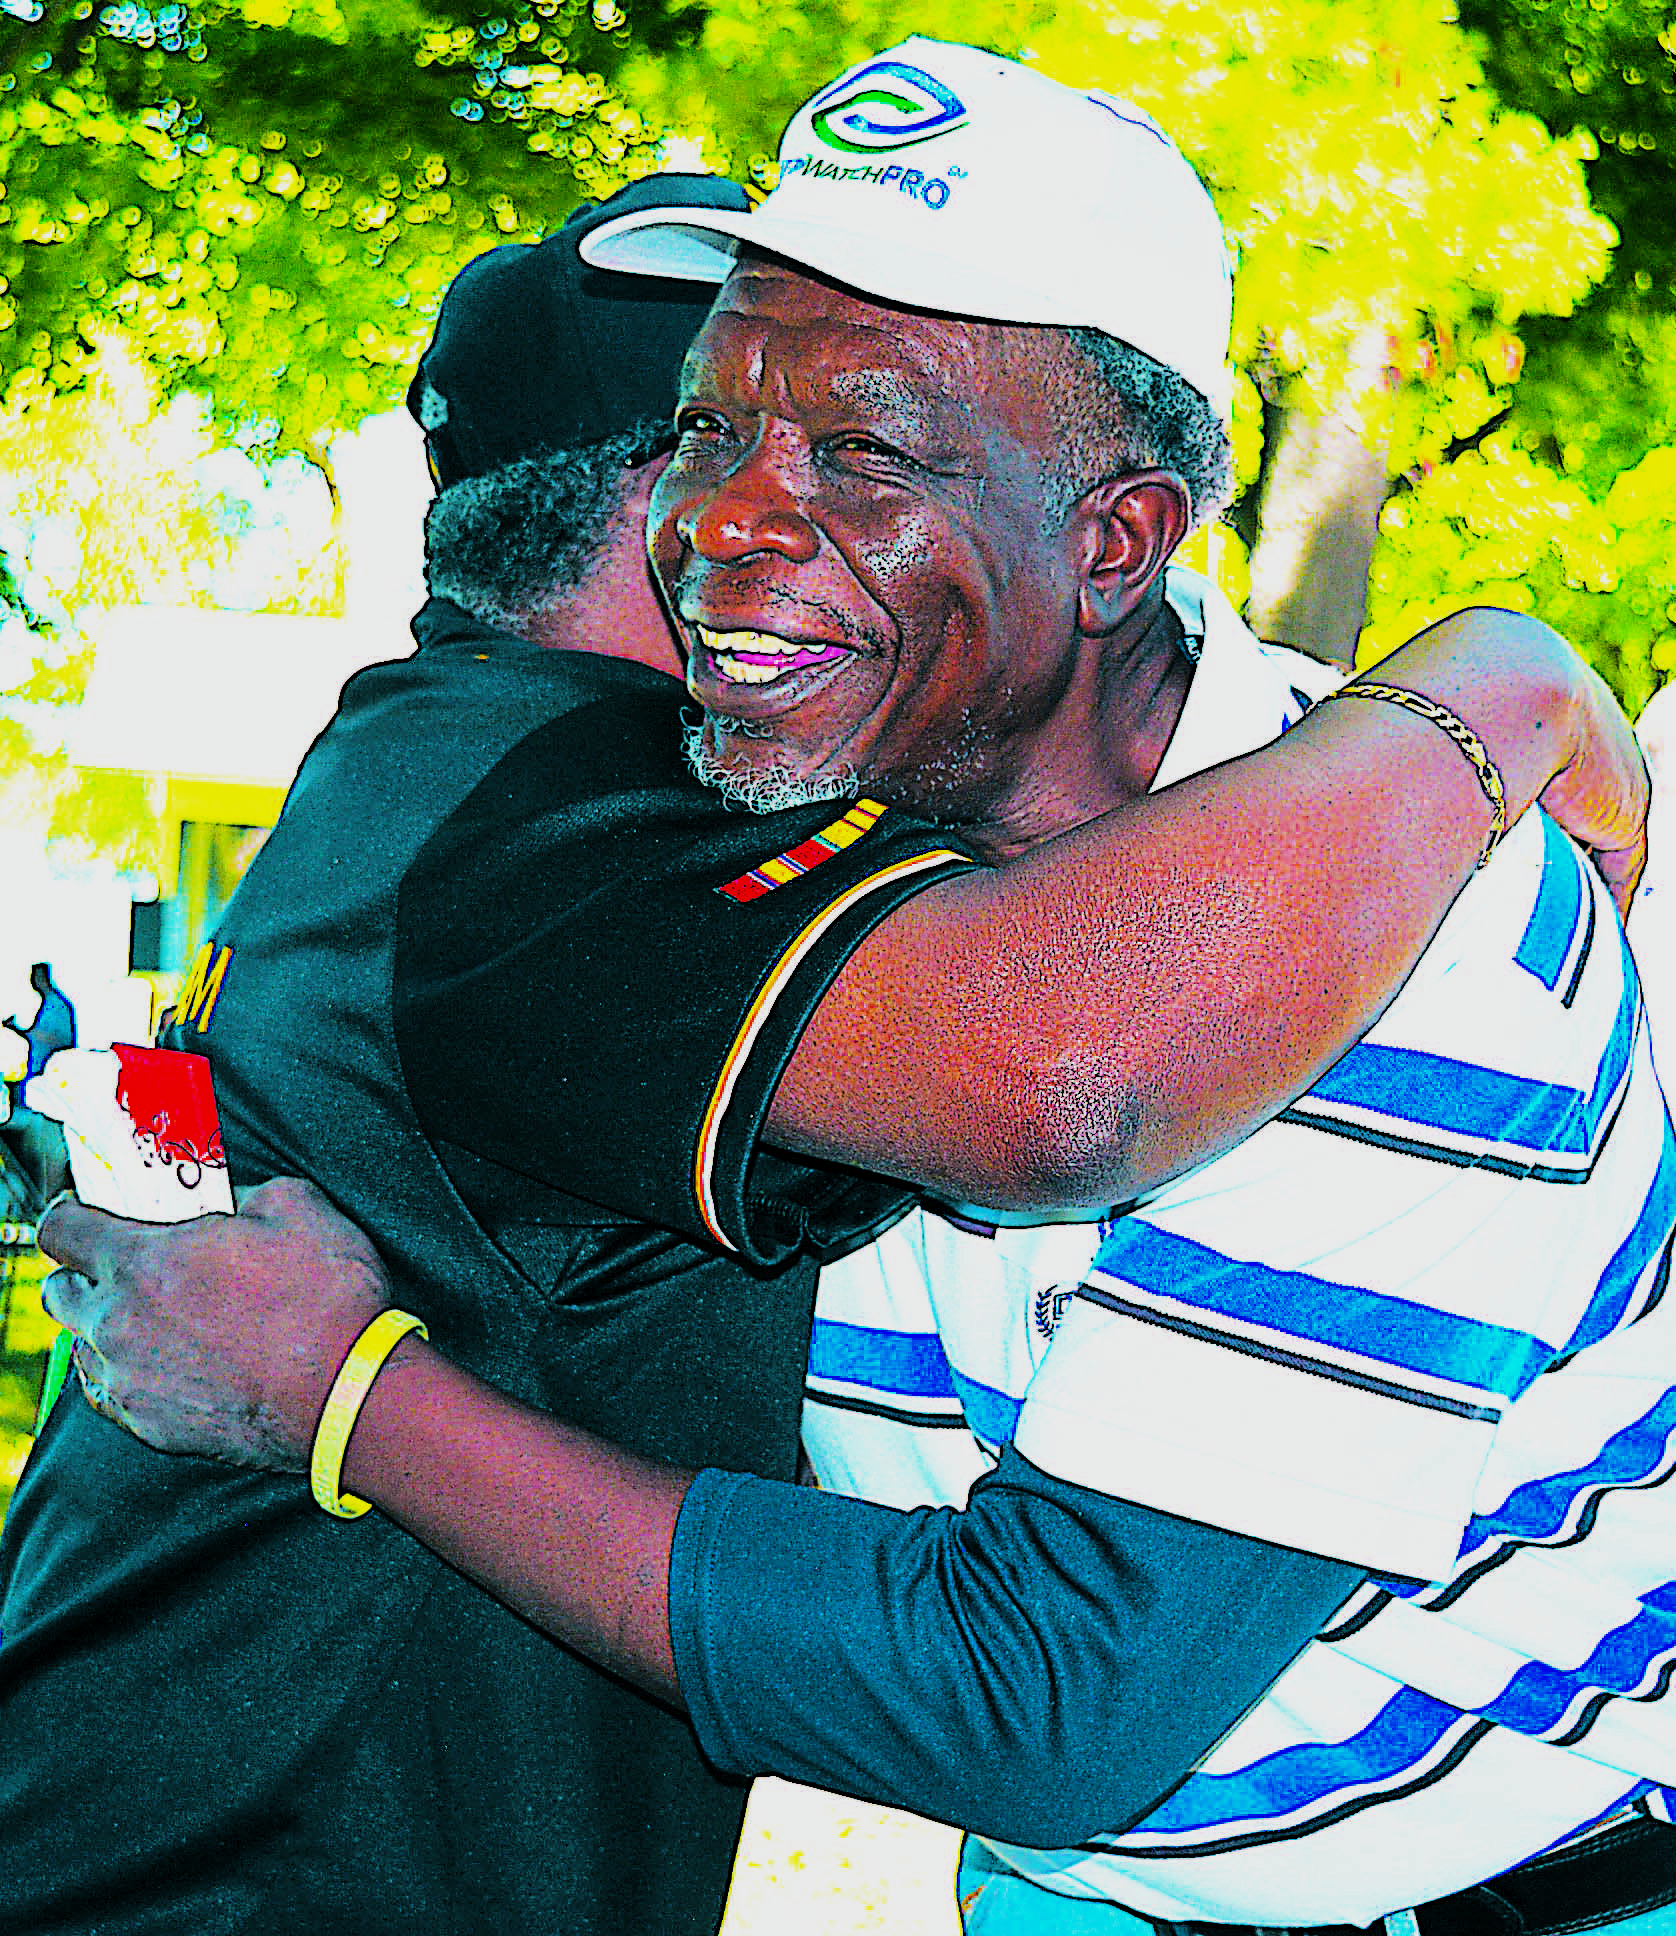 Receiving a big hug following a prayer is William Anthony, who served in the U.S. Air Force from 1975-80. Photo by C.J. Carnacchio.